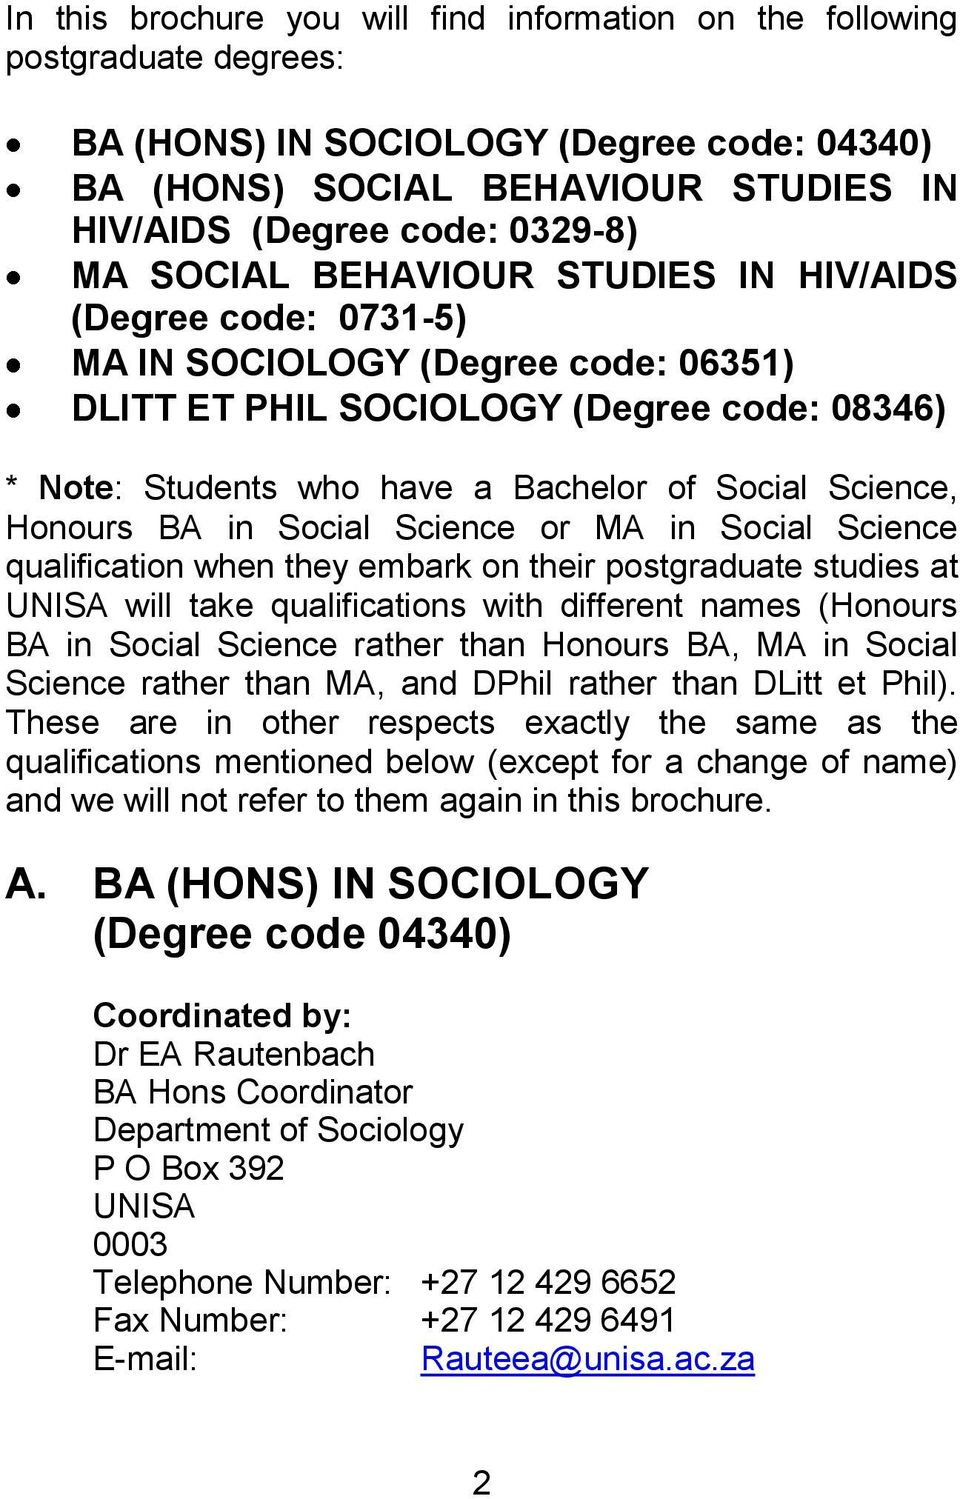 Unisa thesis template